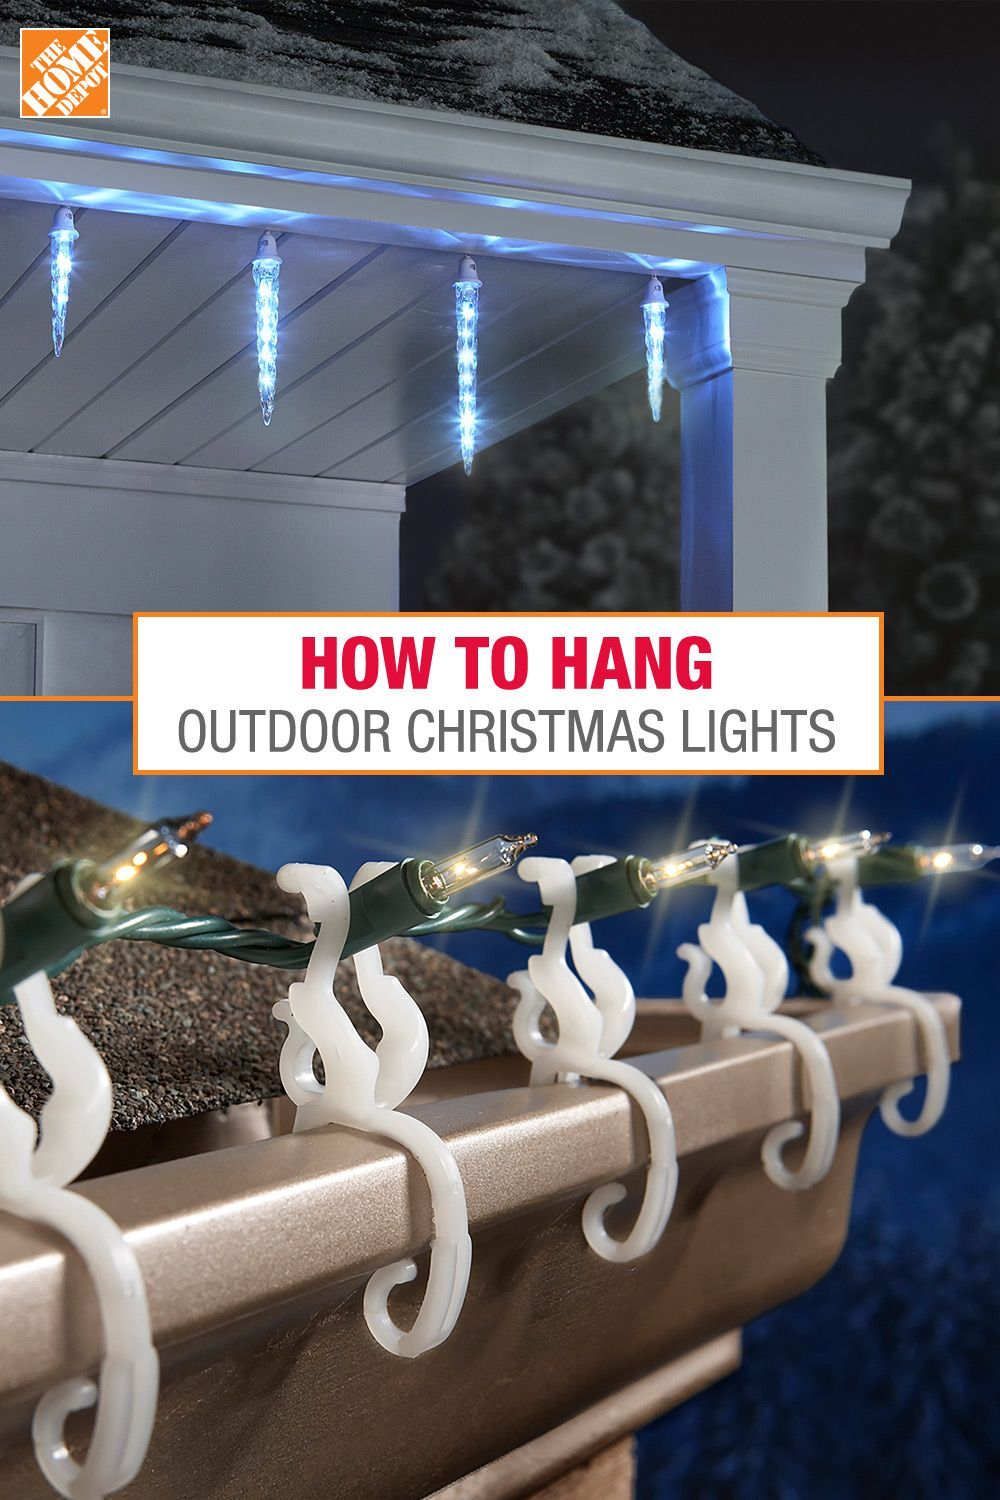 How To Hang Outdoor Christmas Lights Outdoor Christmas Lights Christmas House Lights Christmas Light Clips